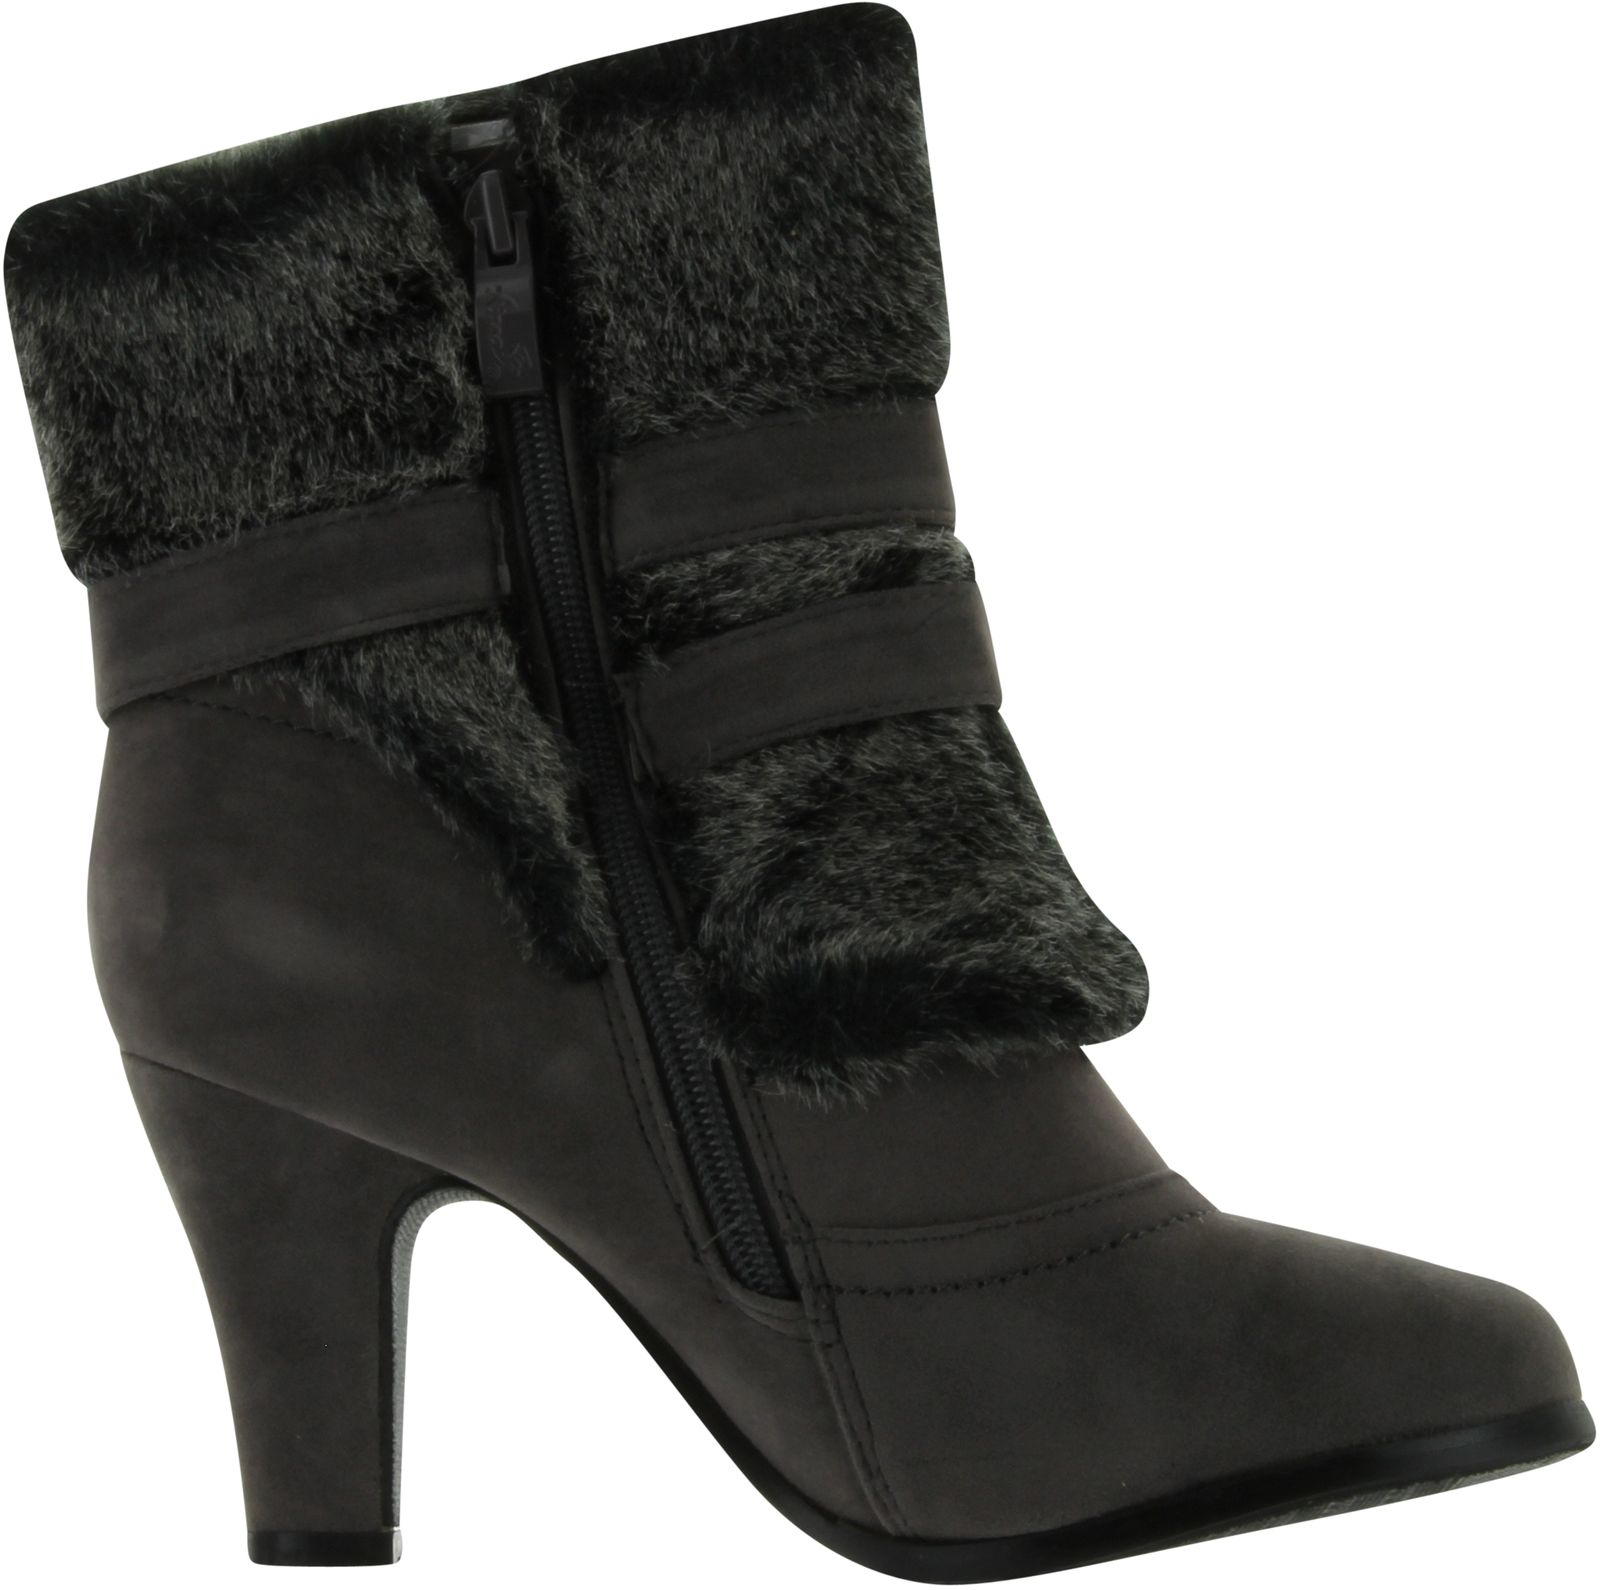 nb200 08 s high heel ankle boots with fur trim